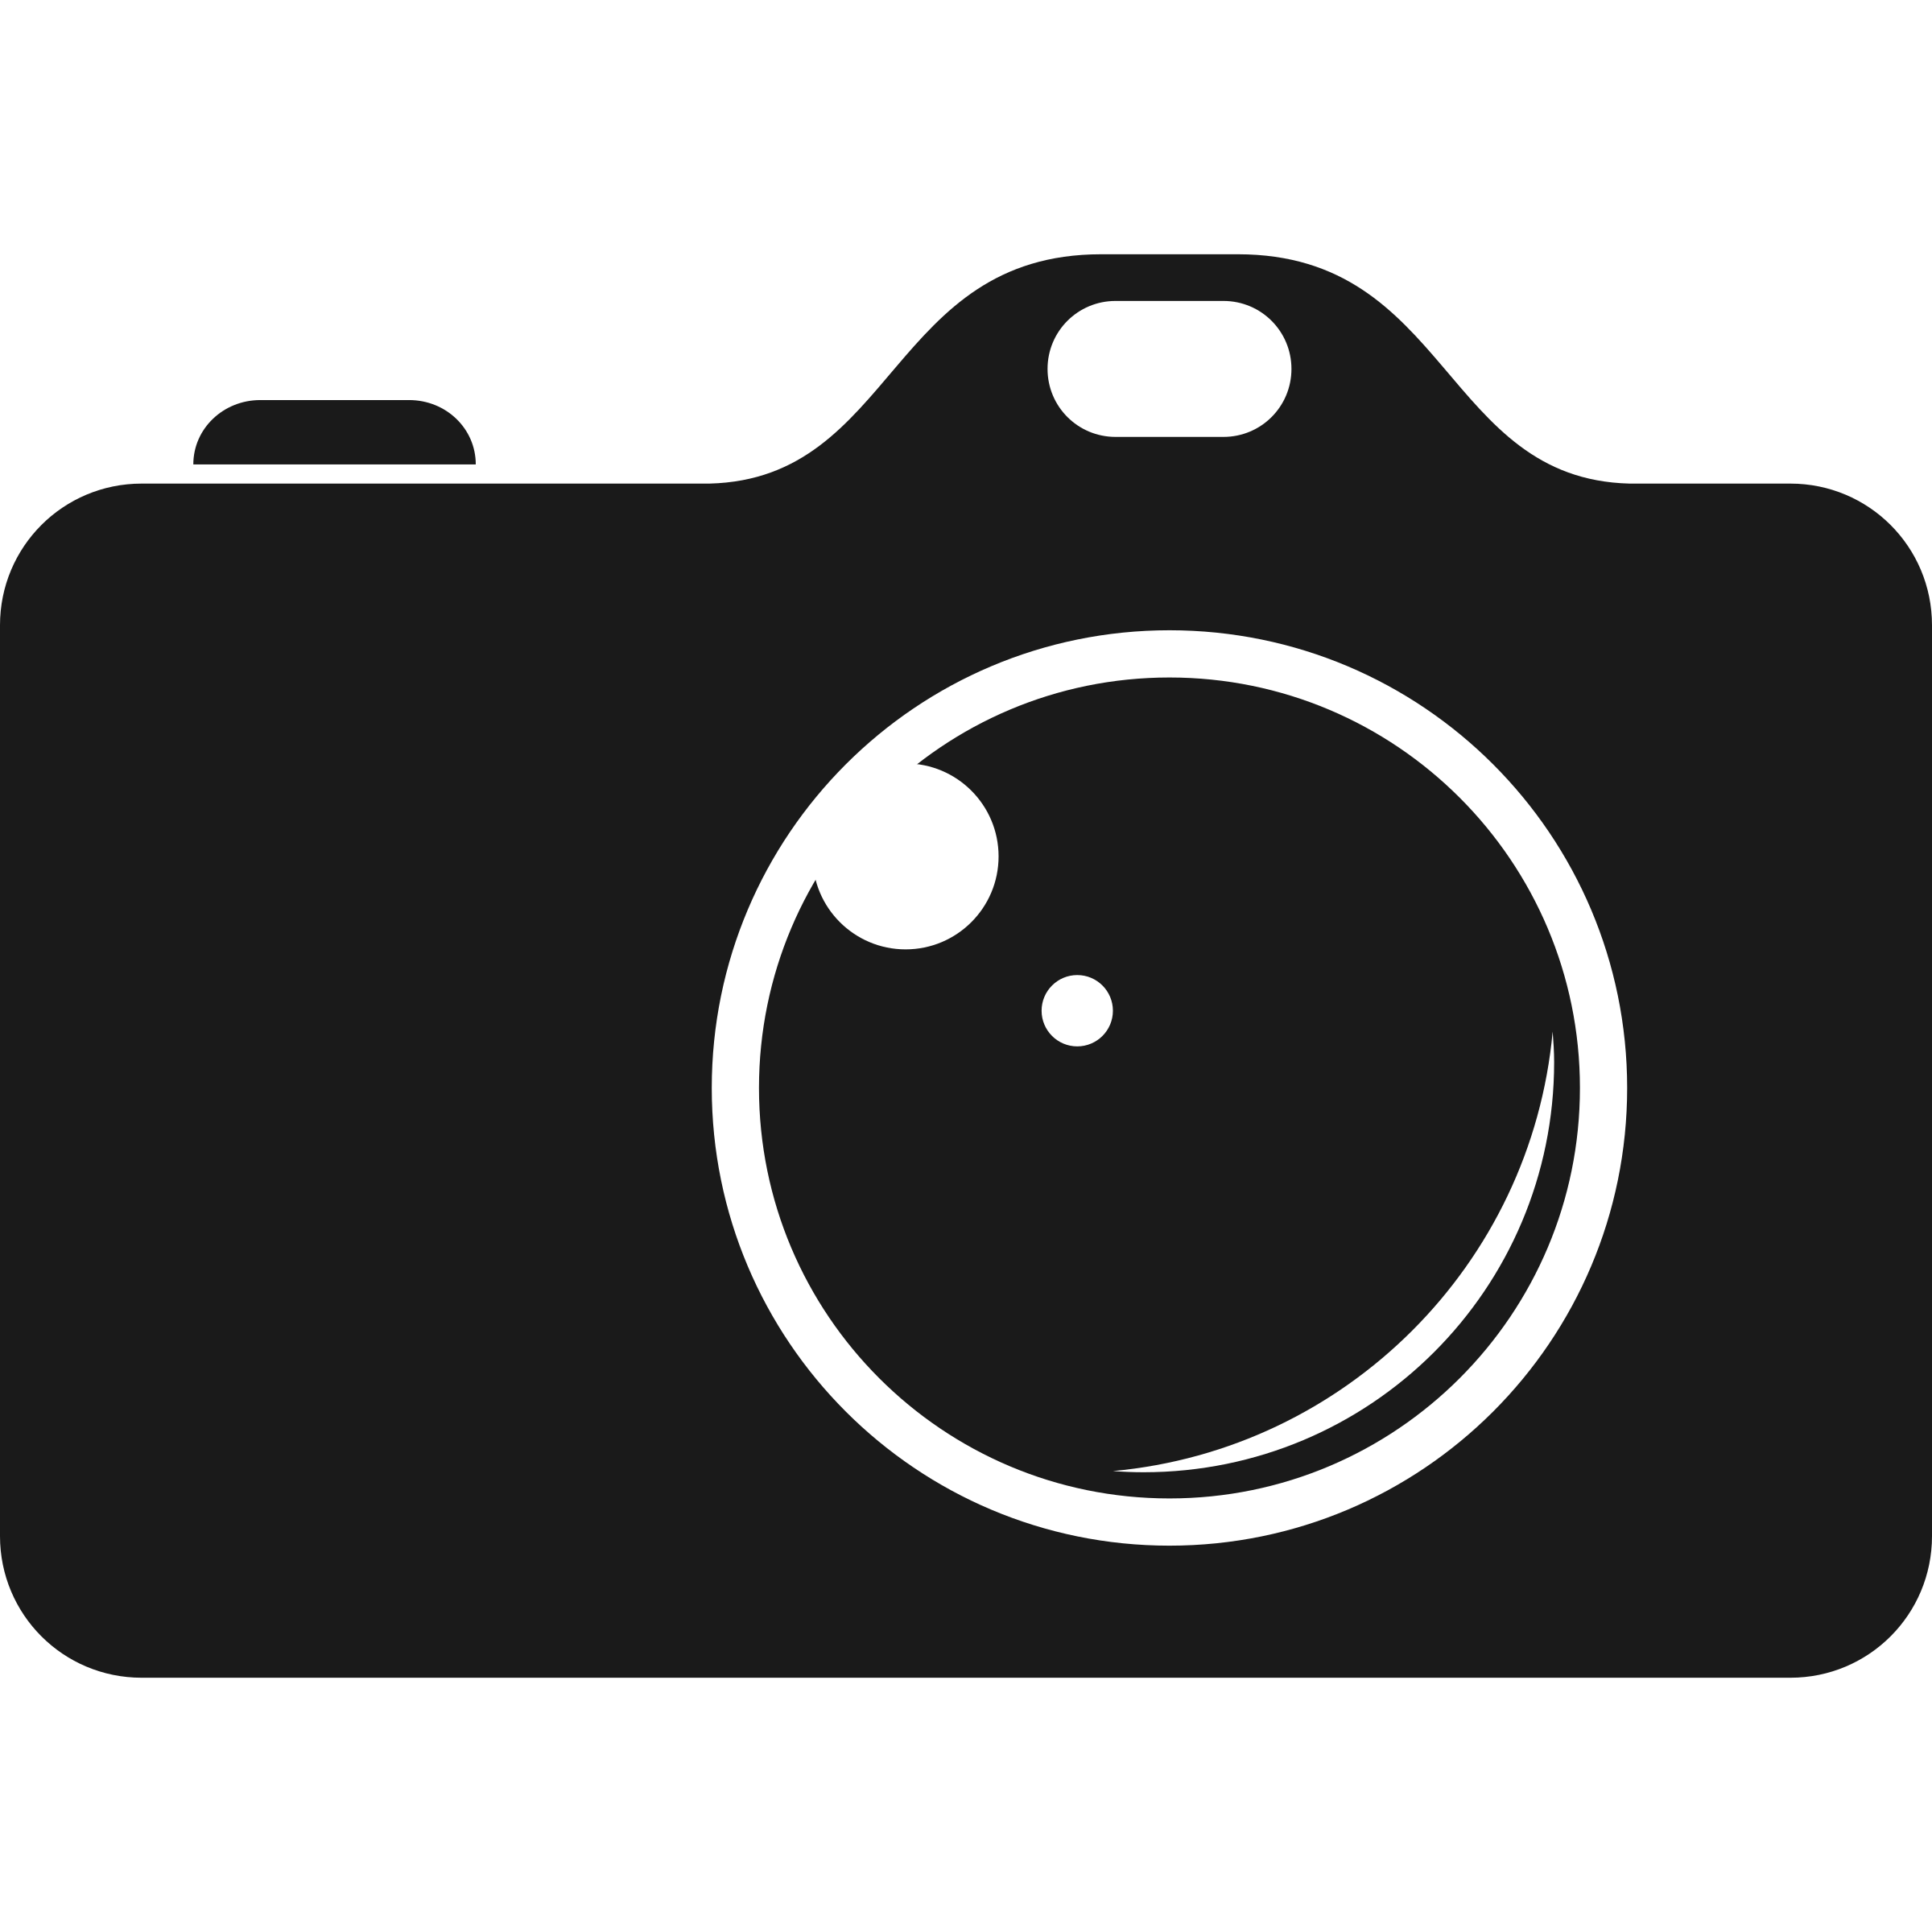 Yearbook clipart snapshot camera. Icon big image png